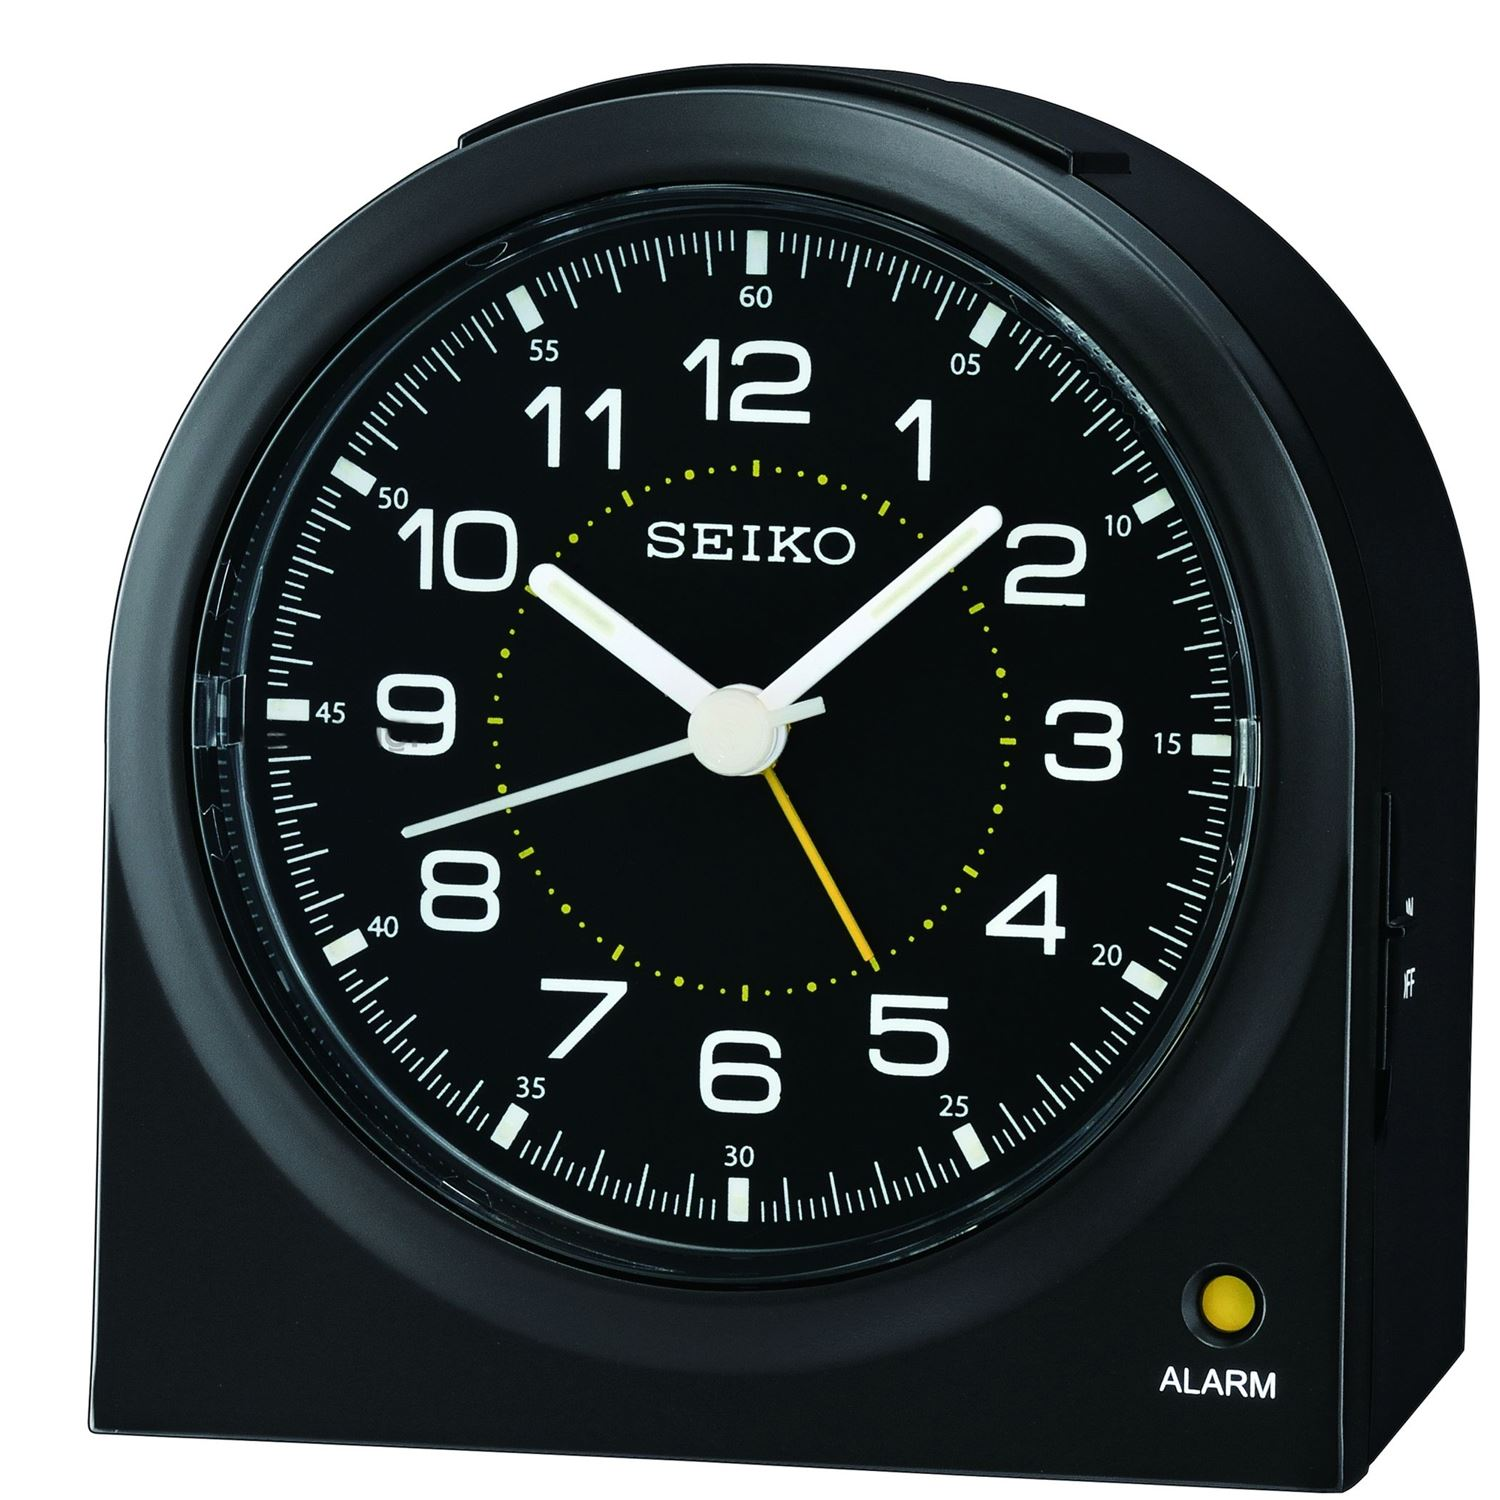 Bedside Alarm Clock Digital Bedside Alarm Clock From Seiko Clocks Beep Alarm Snooze